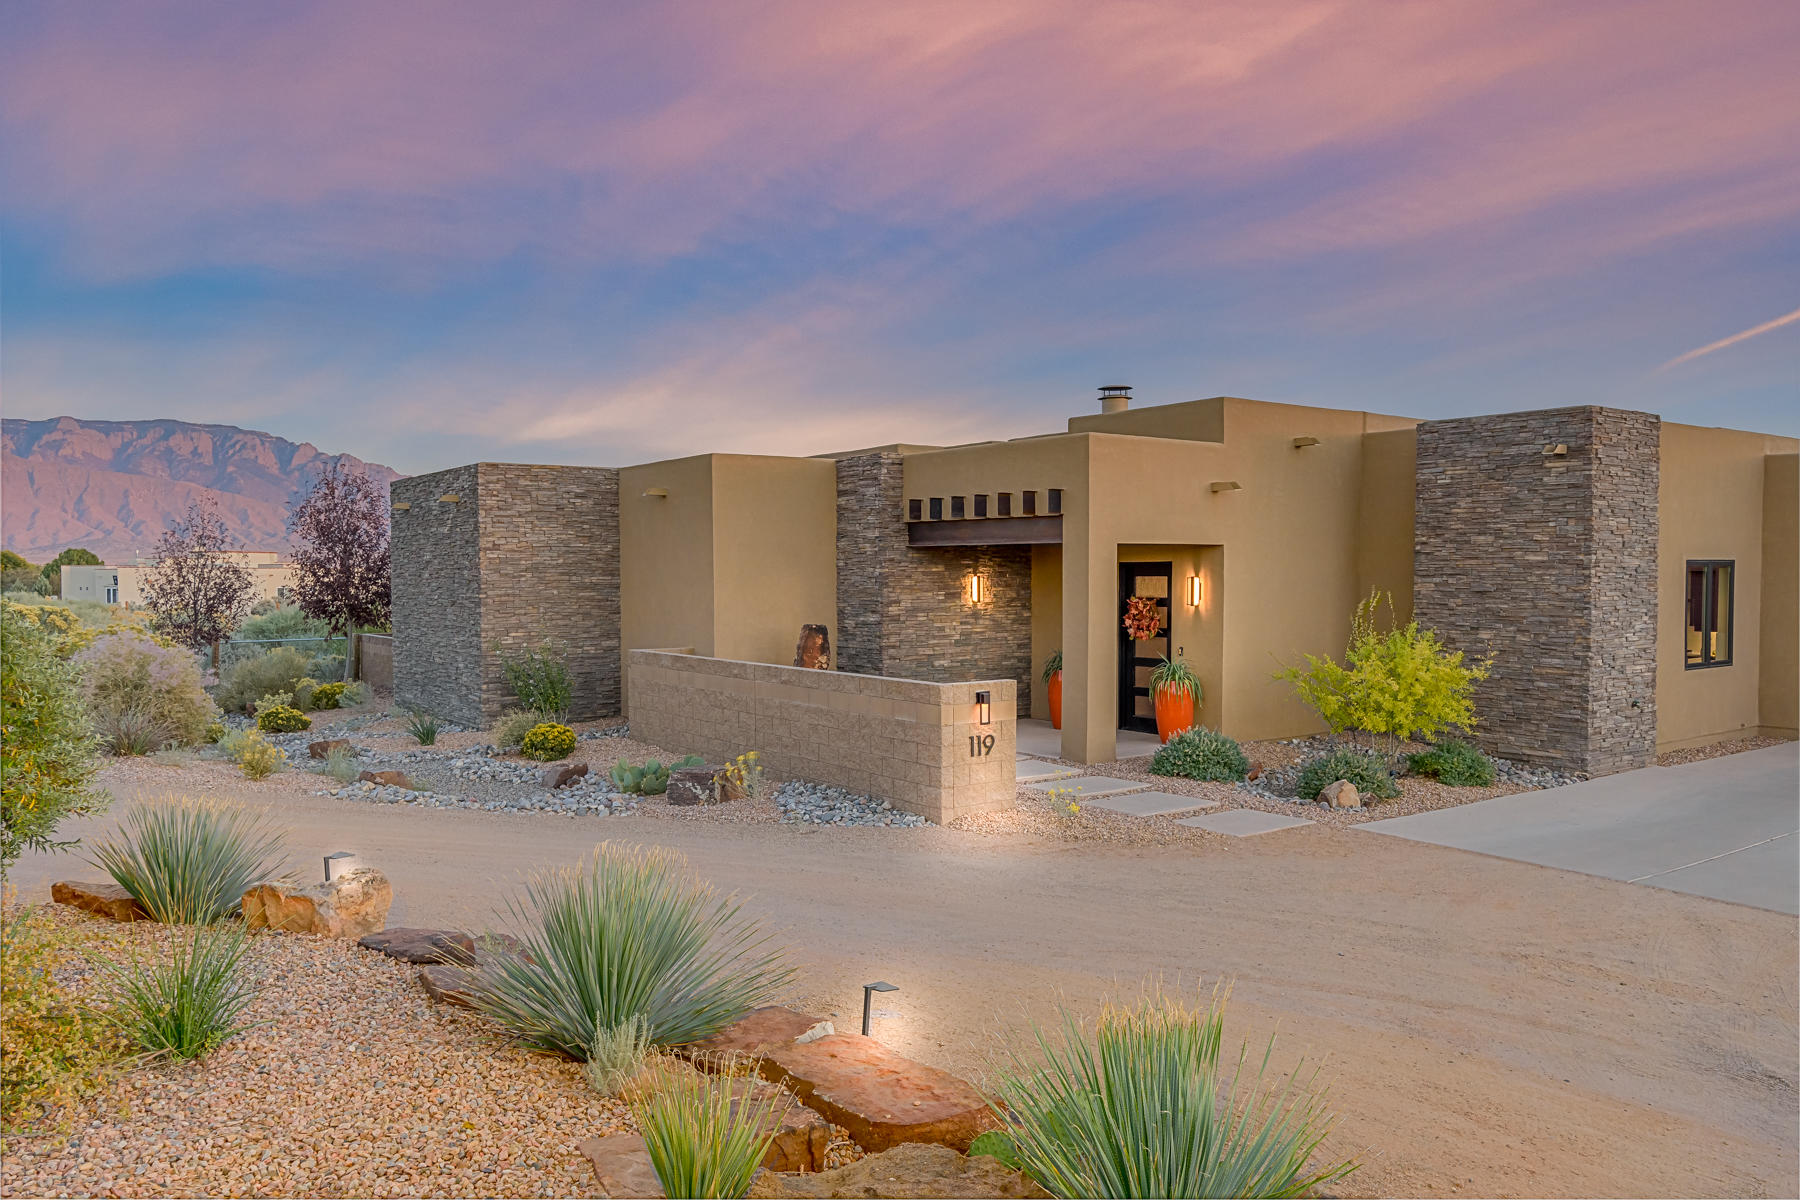 Amazing multi-generational estate with unobstructed views of the mountains and city lights! Rare opportunity to purchase the builder's personal home with a detached guest house.  This is an award winning home that swept all categories in the 2017 Parade of Homes. Old meets new in a thoroughly modern take on classic southwestern style.  The home blends traditional pueblo architecture with brick, steel and glass to define a completely new genre. Features of the main house include 3 bedrooms plus a bonus room, 2 3/4 bathrooms, brick floors, a unique masonry fireplace with a floating concrete hearth, floor-to-ceiling windows, small pool/hot tub.  The guest house features 1096 SF with one bedroom and open concept living, covered patio with views and a private driveway/entrance off of El Dorado.